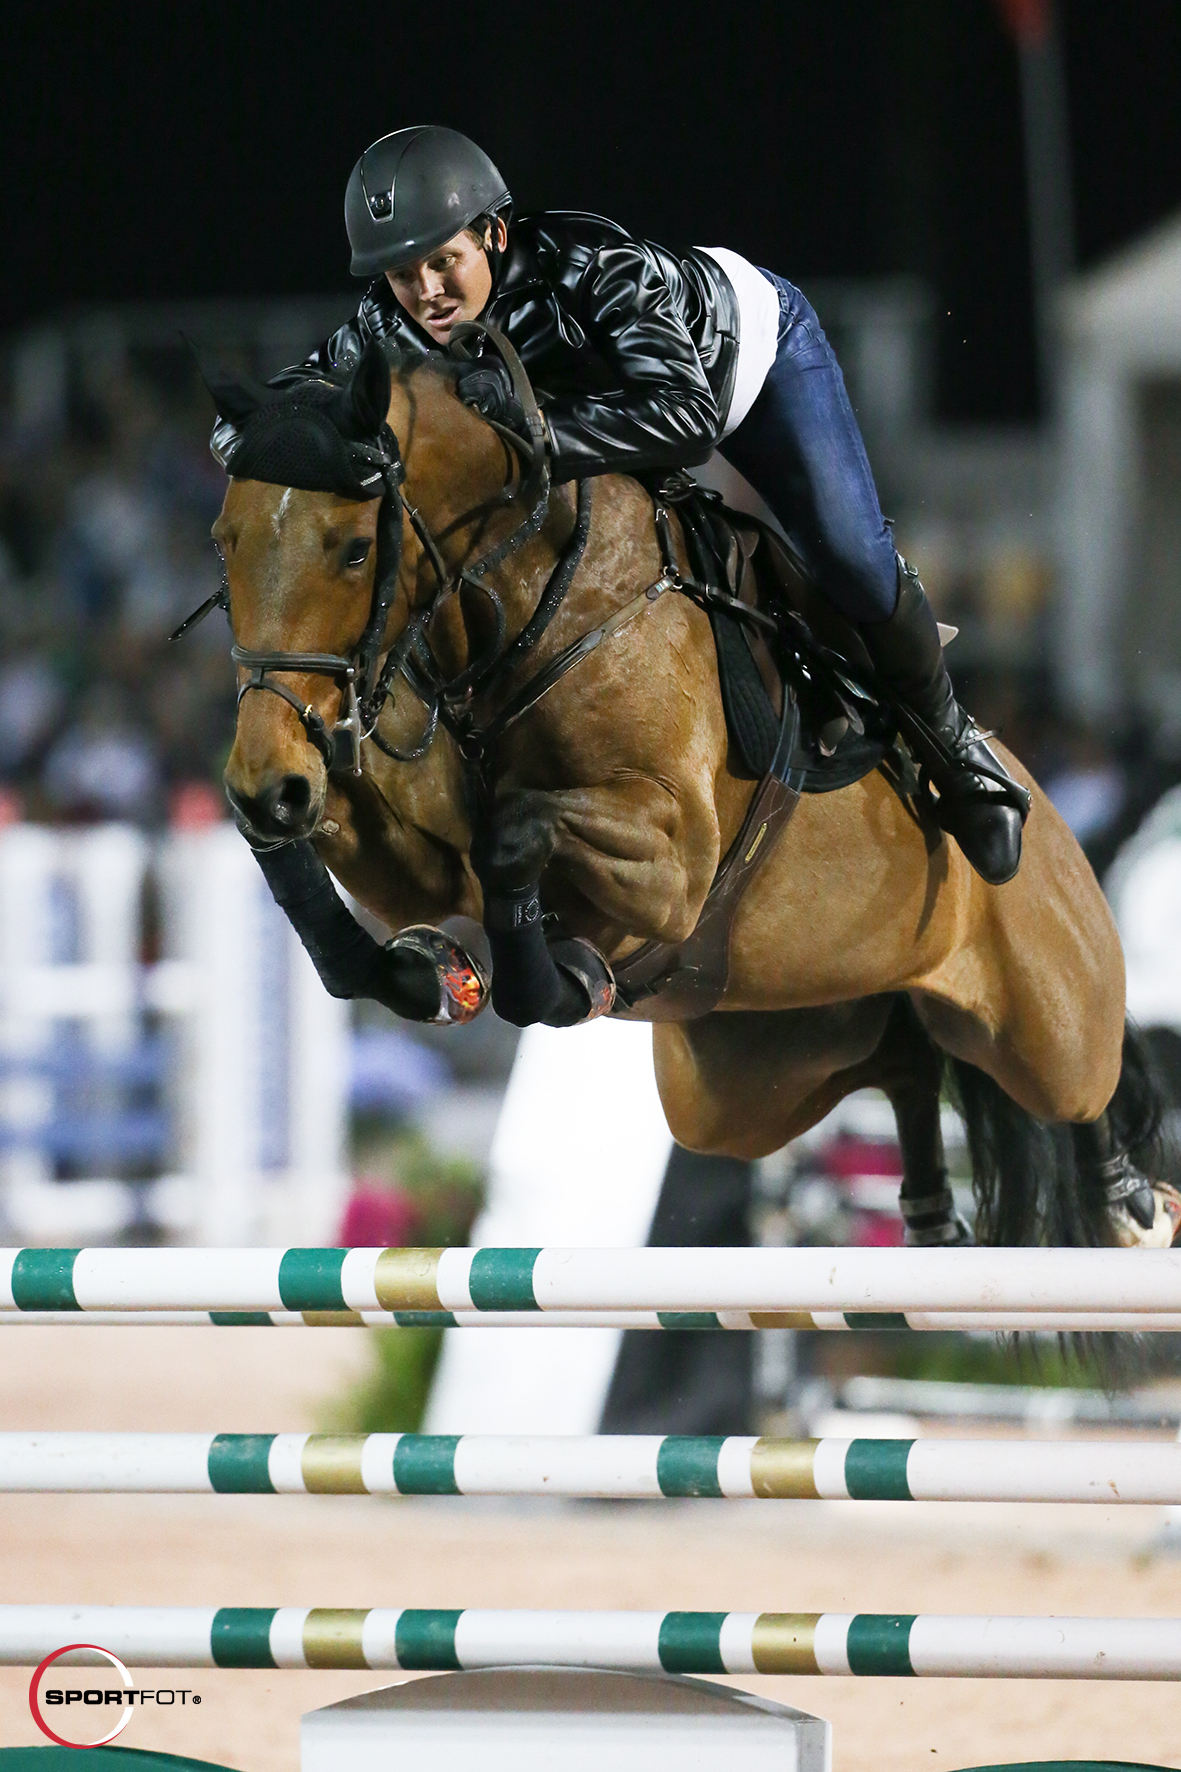 Shane Sweetnam and Catch a Star HHS GCC 298_9279 Sportfot